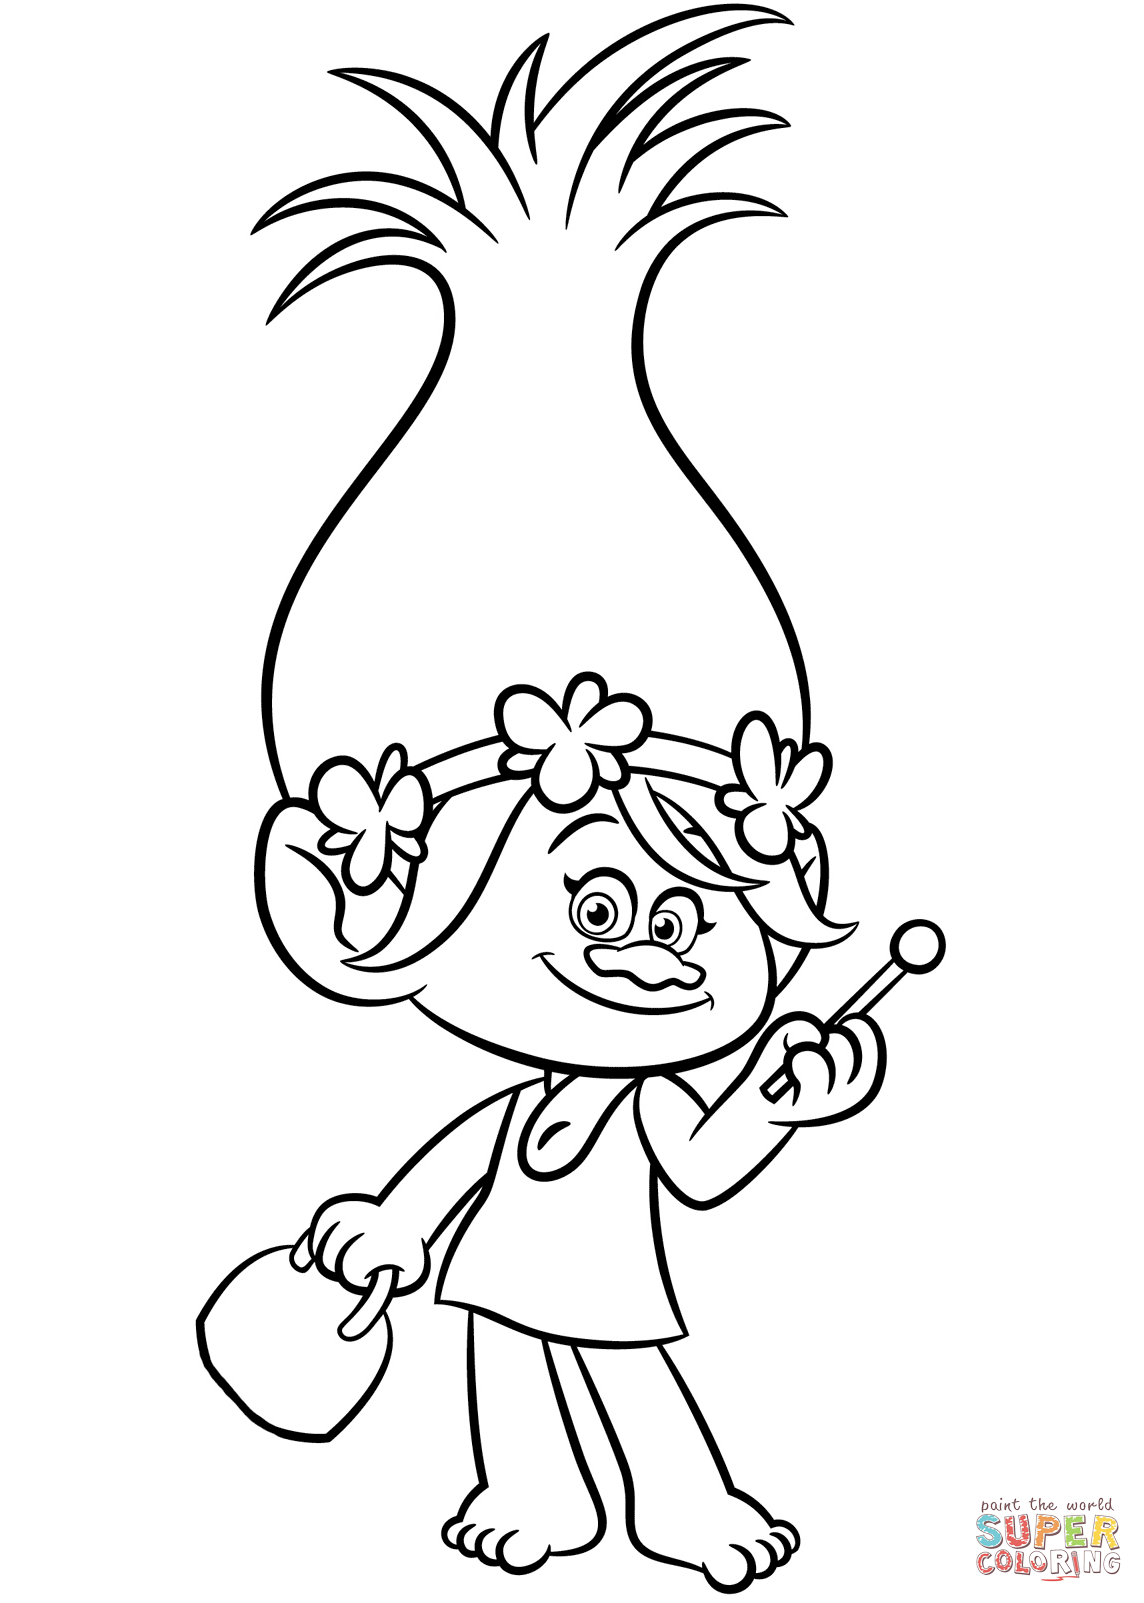 Poppy From Trolls Coloring Page | Free Printable Coloring Pages - Free Printable Troll Coloring Pages